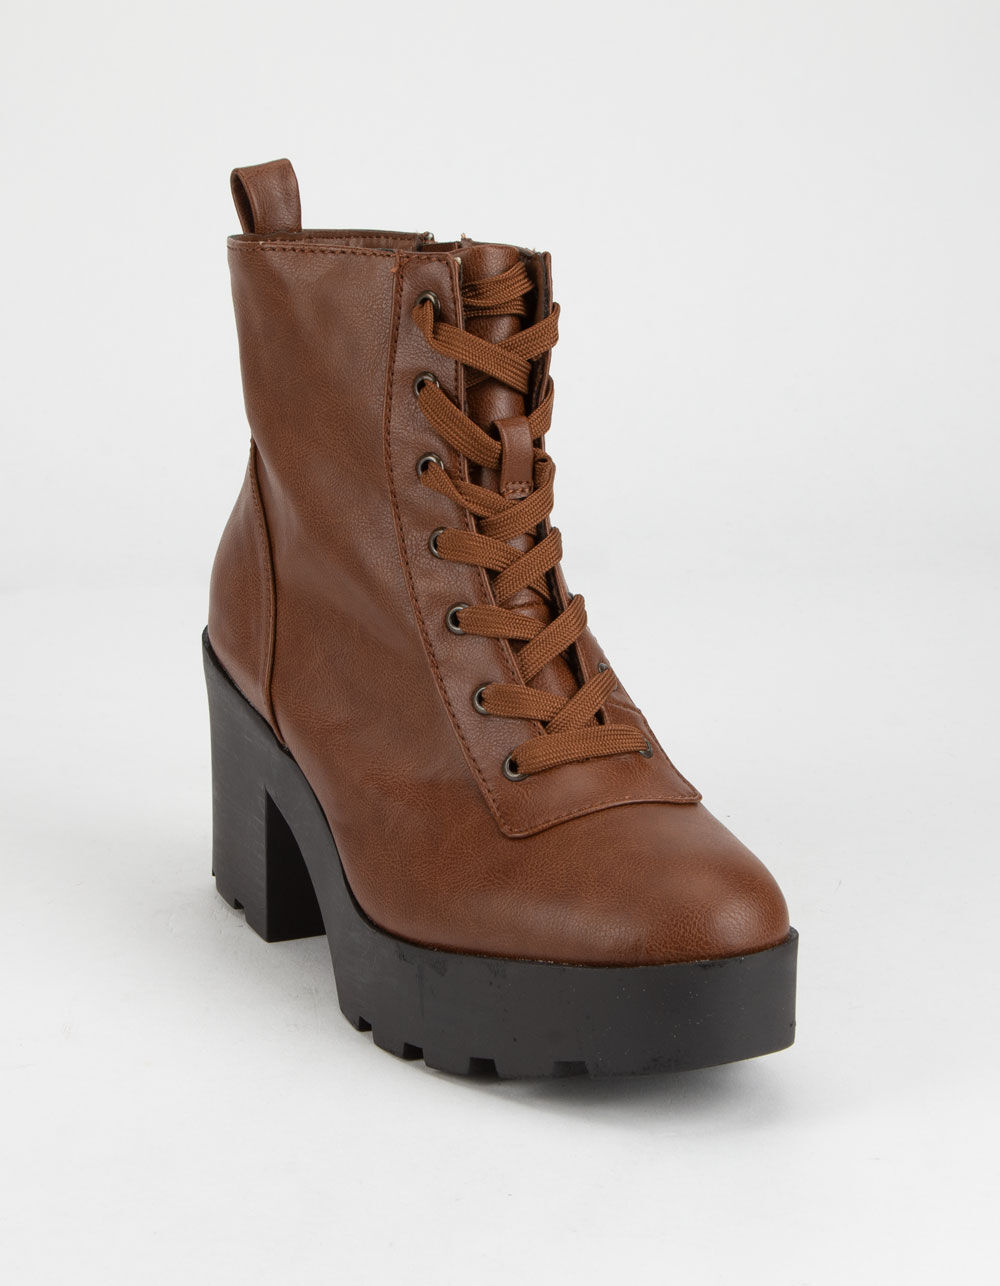 BAMBOO Chunky Lug Sole Lace Up Chestnut Boots